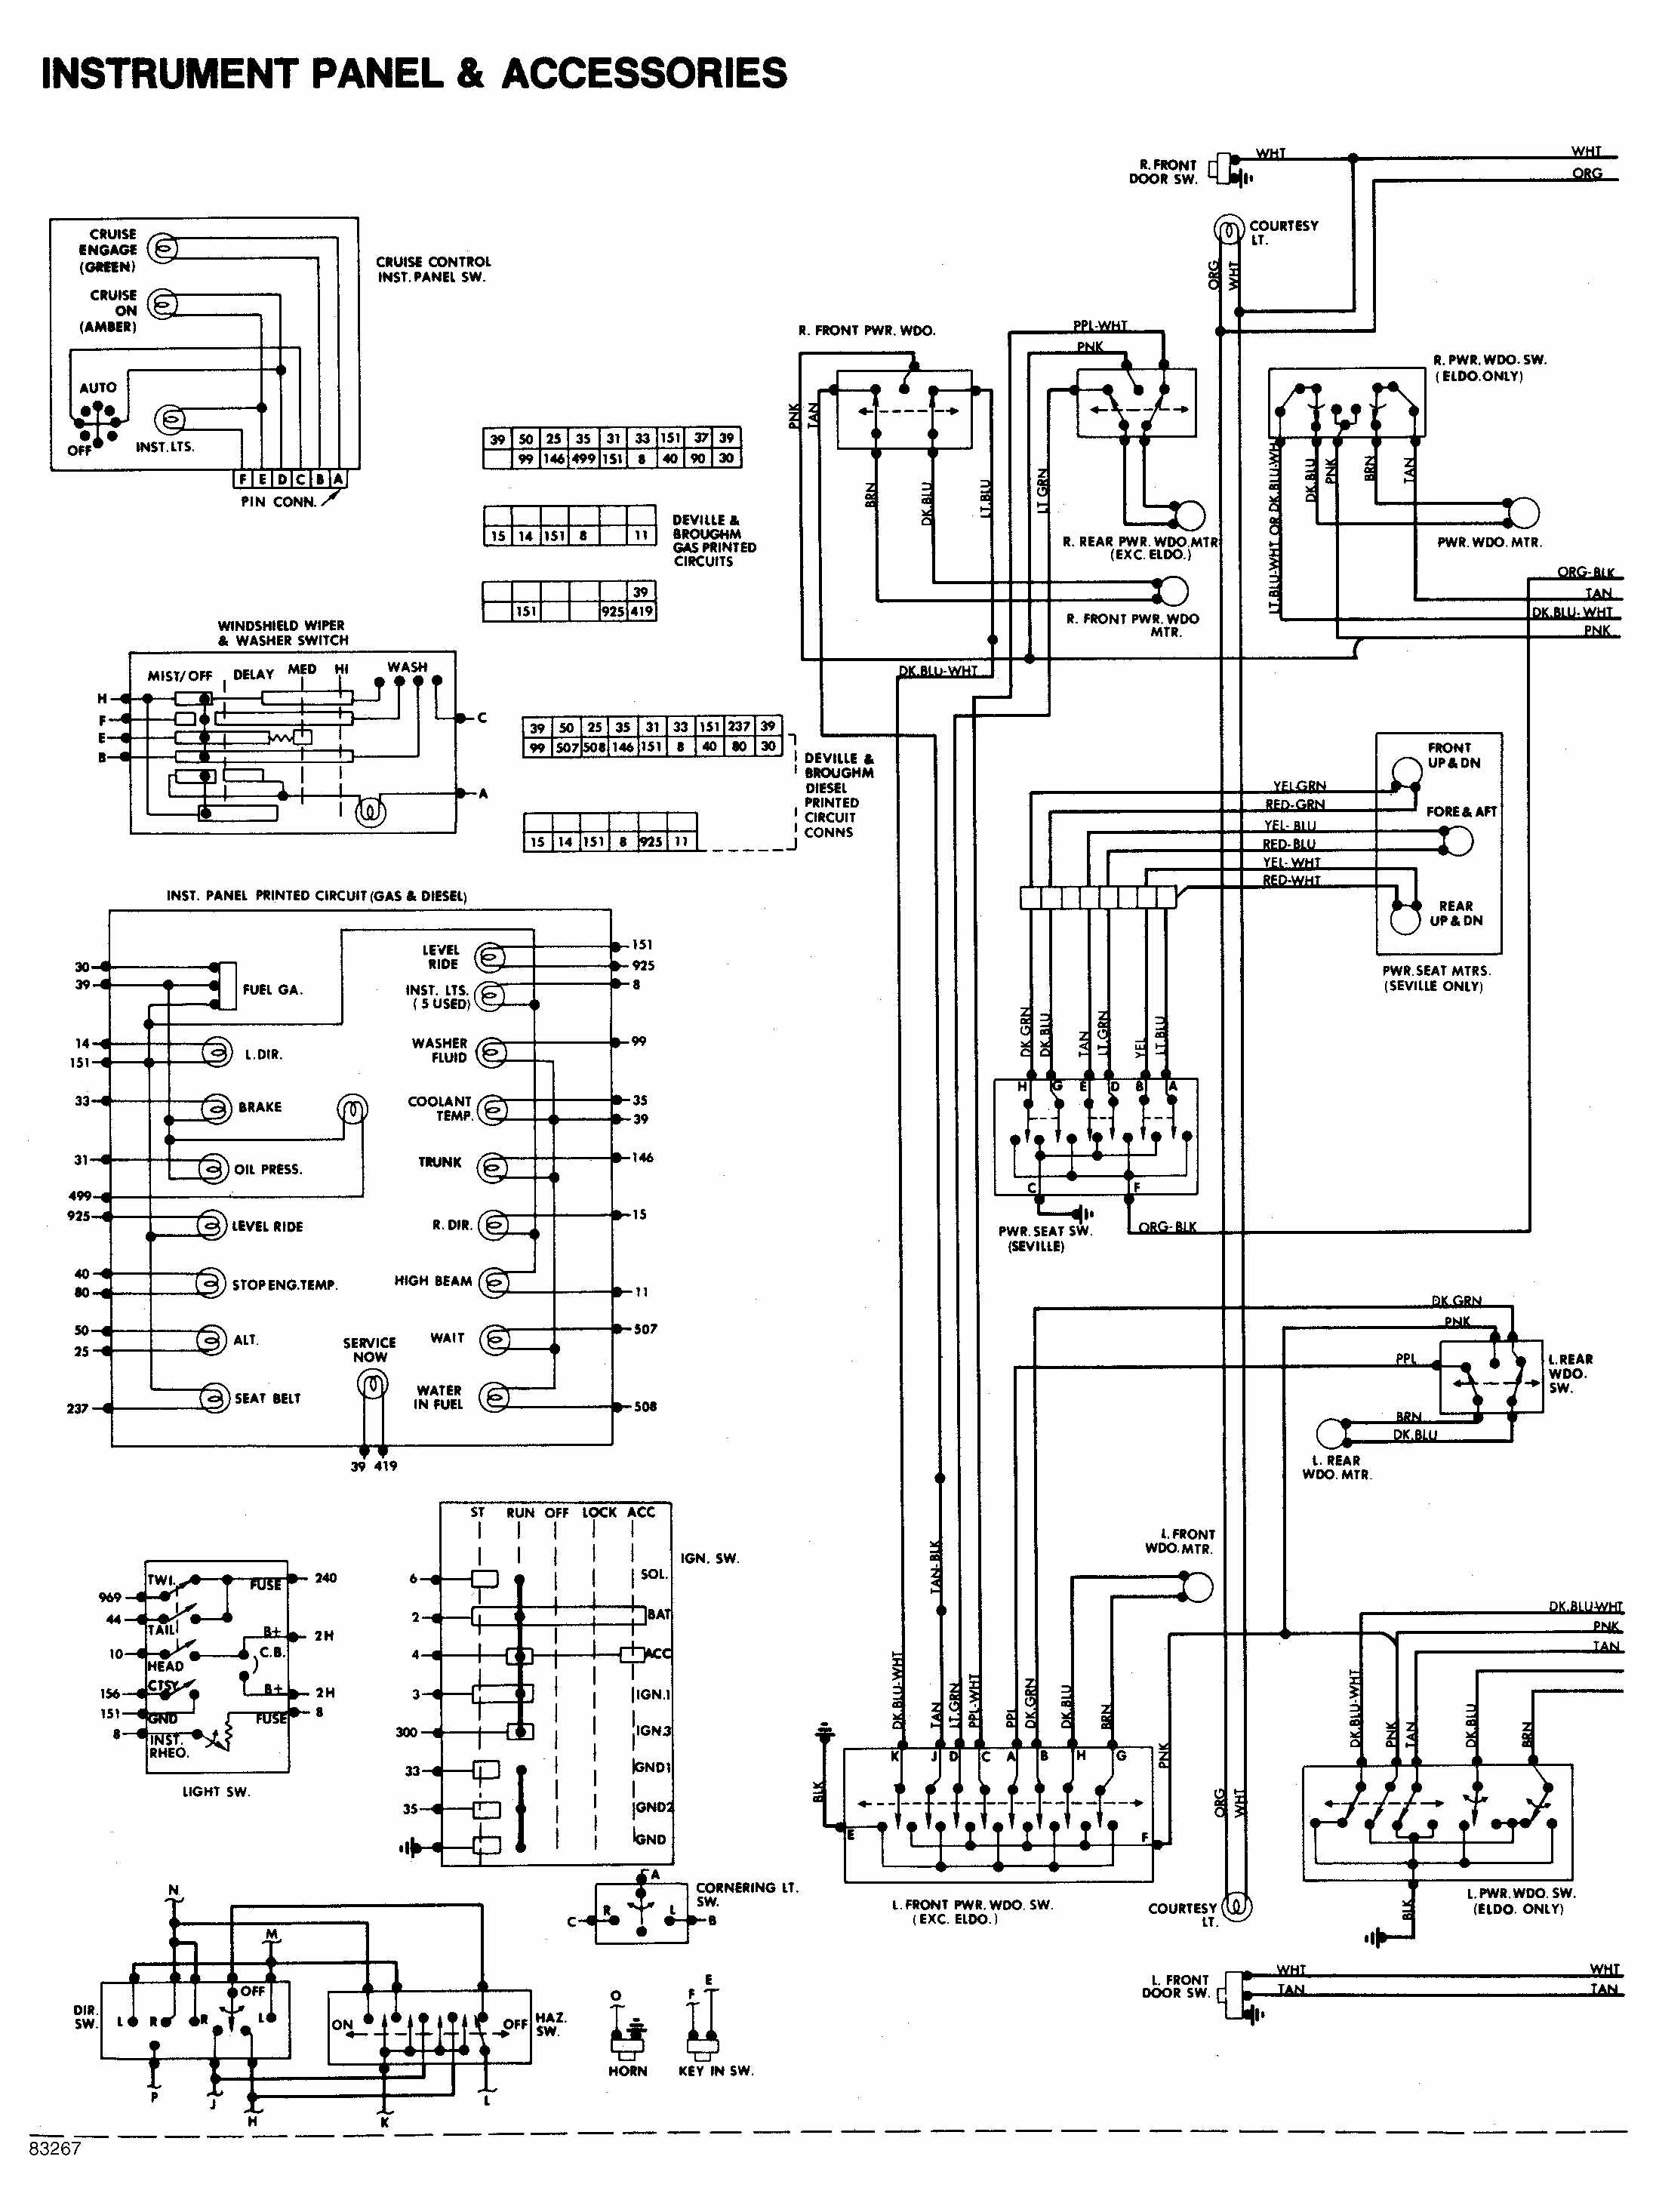 wiring diagram for 2005 ford explorer